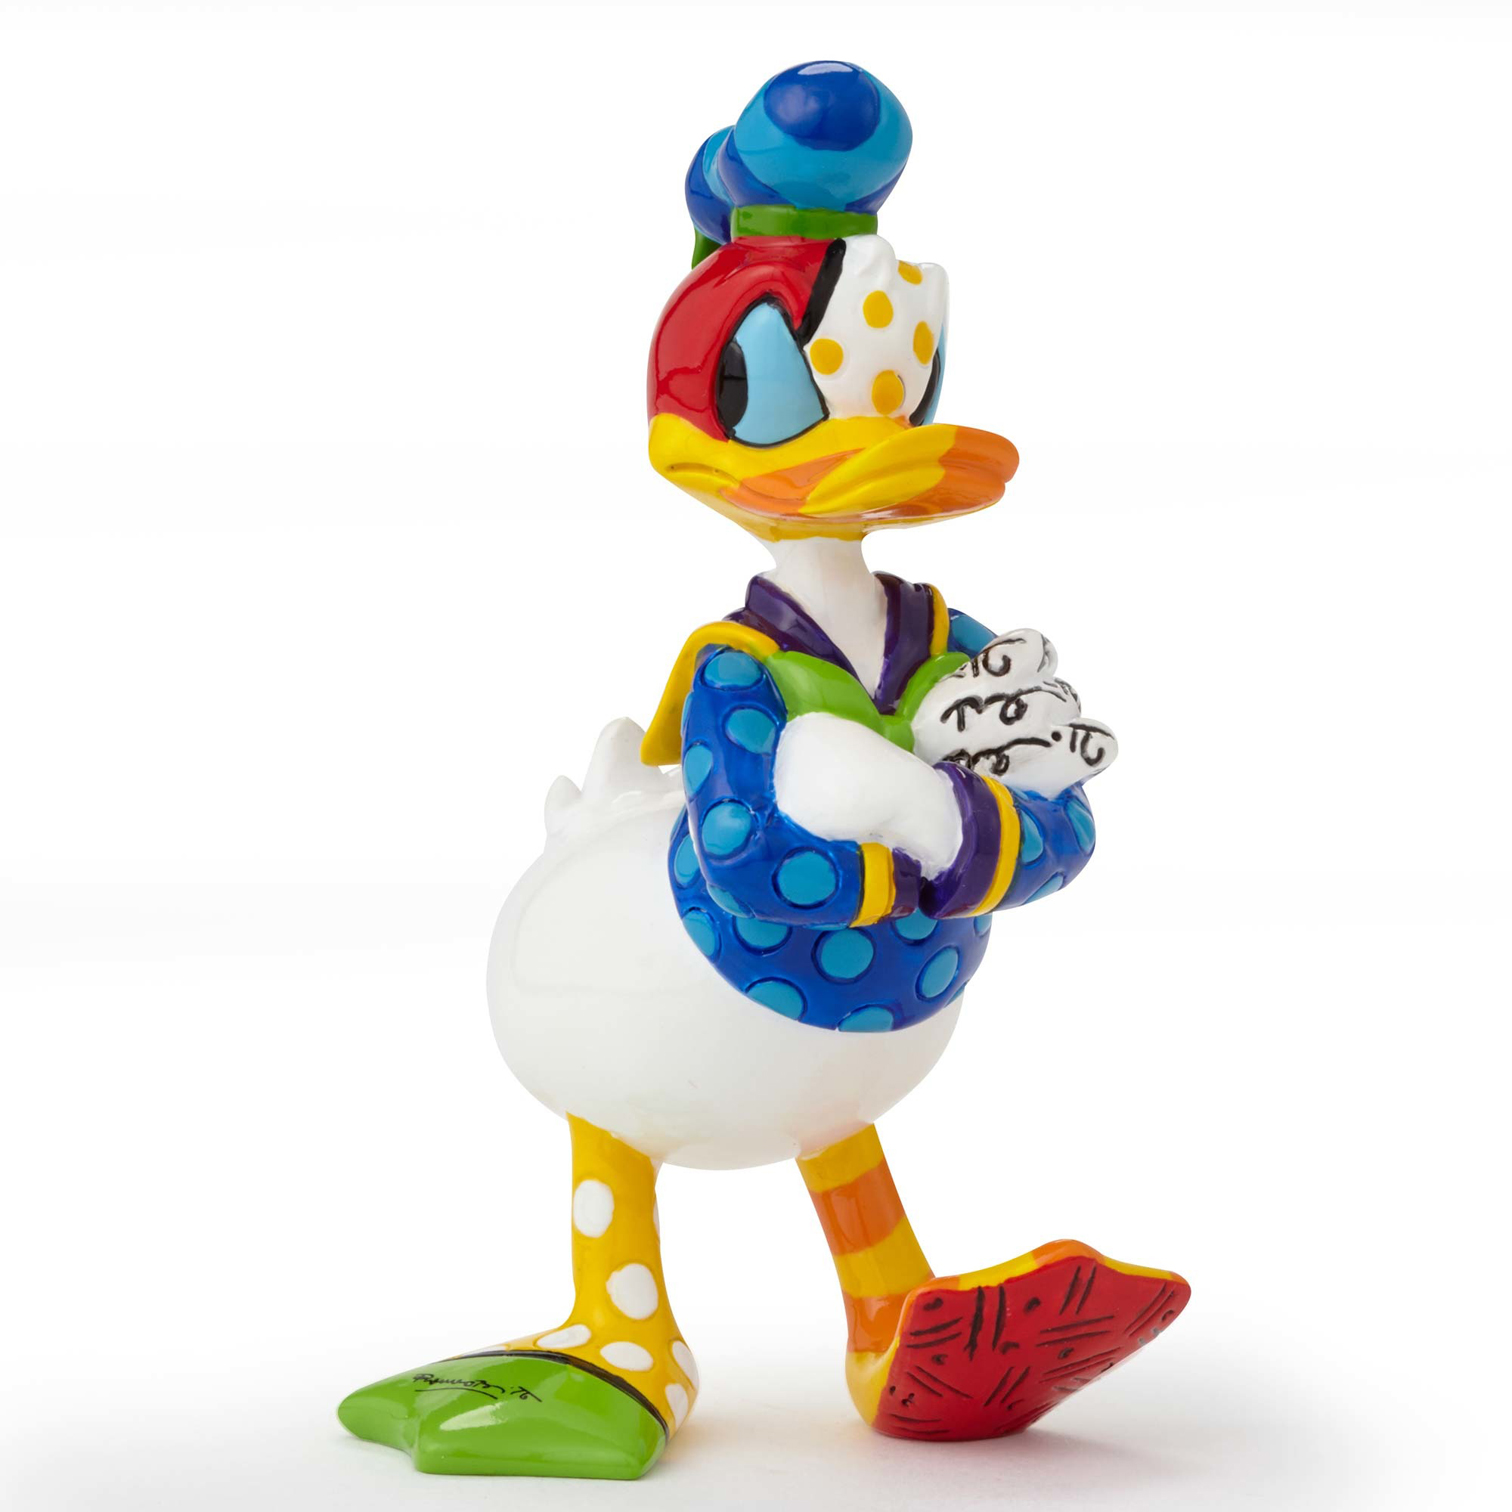 Disney by Britto 4049375 Donald Duck Mini Figure New 2015